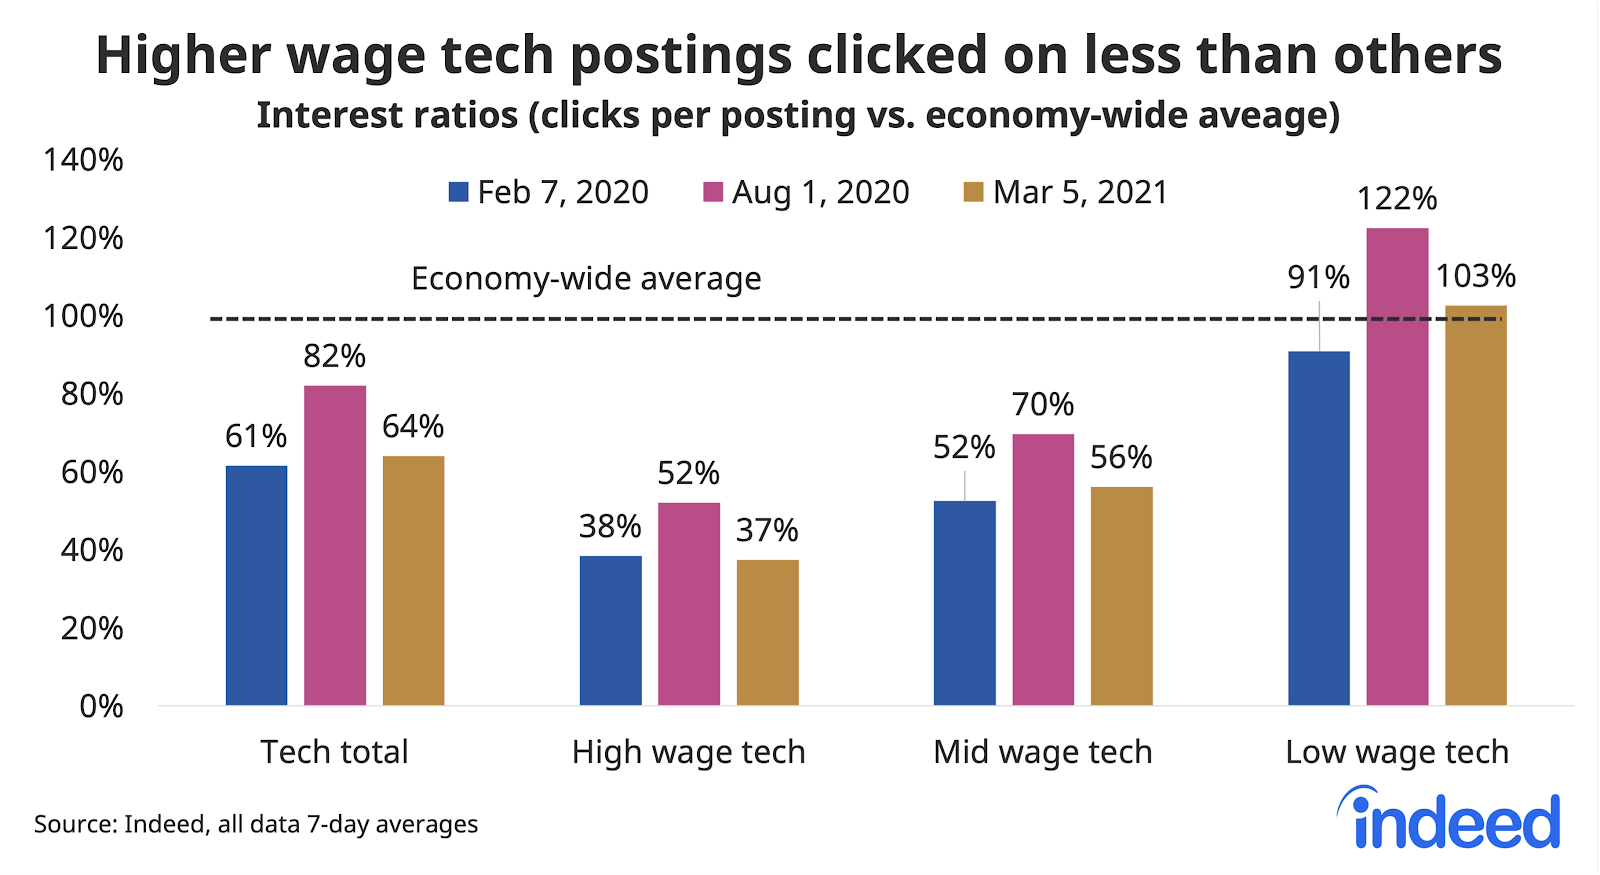 Bar graph showing higher wage tech postings clicked on less than others